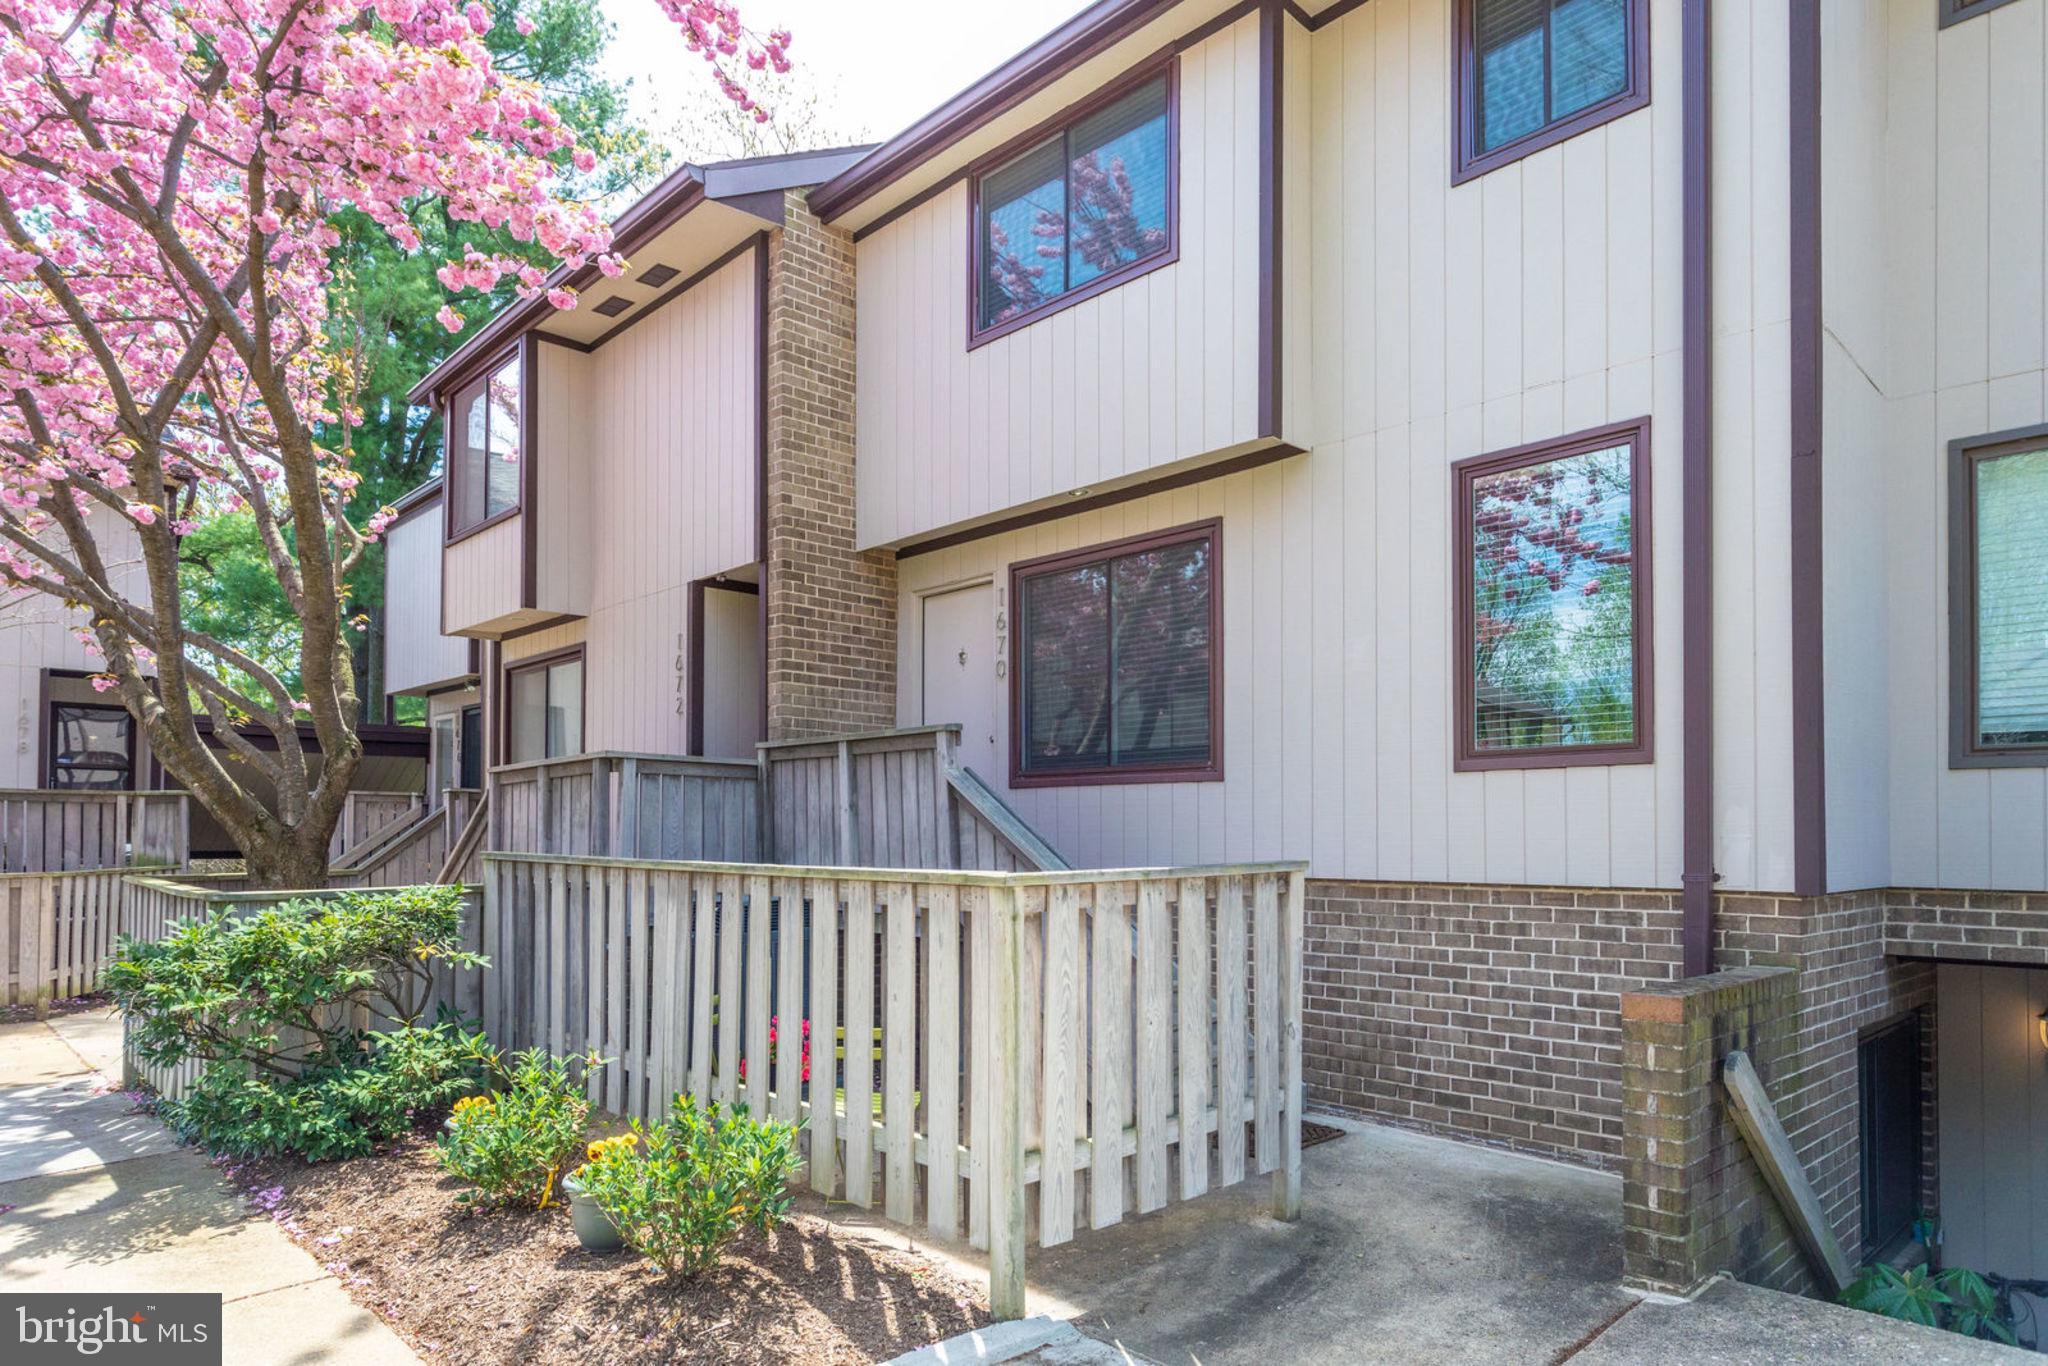 McLean school pyramid; EZ access to the McLean Metro Station... This light-filled, upper 2-level condo with 3 bedrooms and 2.5 bathrooms overlooking a lushly landscaped courtyard is one of the larger sought-after models in The Westerlies. The recently renovated kitchen includes new cabinets with elegant hardware and molding, under-cabinet lighting, recessed lighting, an extended island with added storage, Quartz countertop with 4~ backsplash, a new GE stainless refrigerator, built-in microwave, stove, dishwasher and under-counter mounted deep stainless sink. Also included with the renovation is a new GE washer and dryer and added cabinetry in the laundry area. To top off the beauty of this home is luxury vinyl plank flooring throughout the main level. Low condo fees. Extra storage under the stairs and in the attic that~s accessible via pull-down stairs. Don~t miss out on this opportunity. Open House 4/27 12p-2p and 4/28 2p-4p